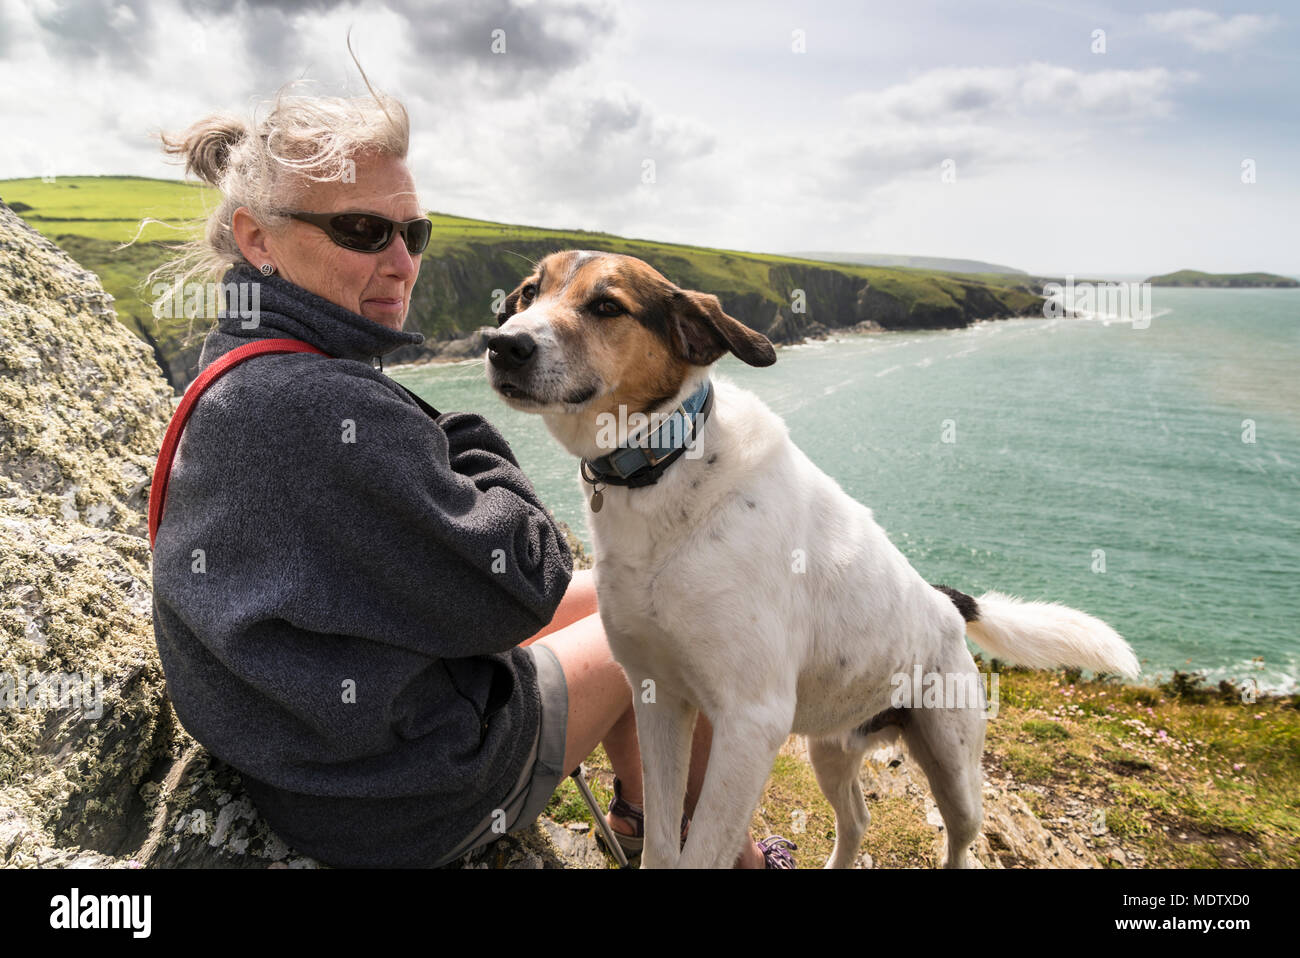 Walking the dog on Foel y Mwnt with Ceredigion coast and Cardigan Bay in the background - Stock Image